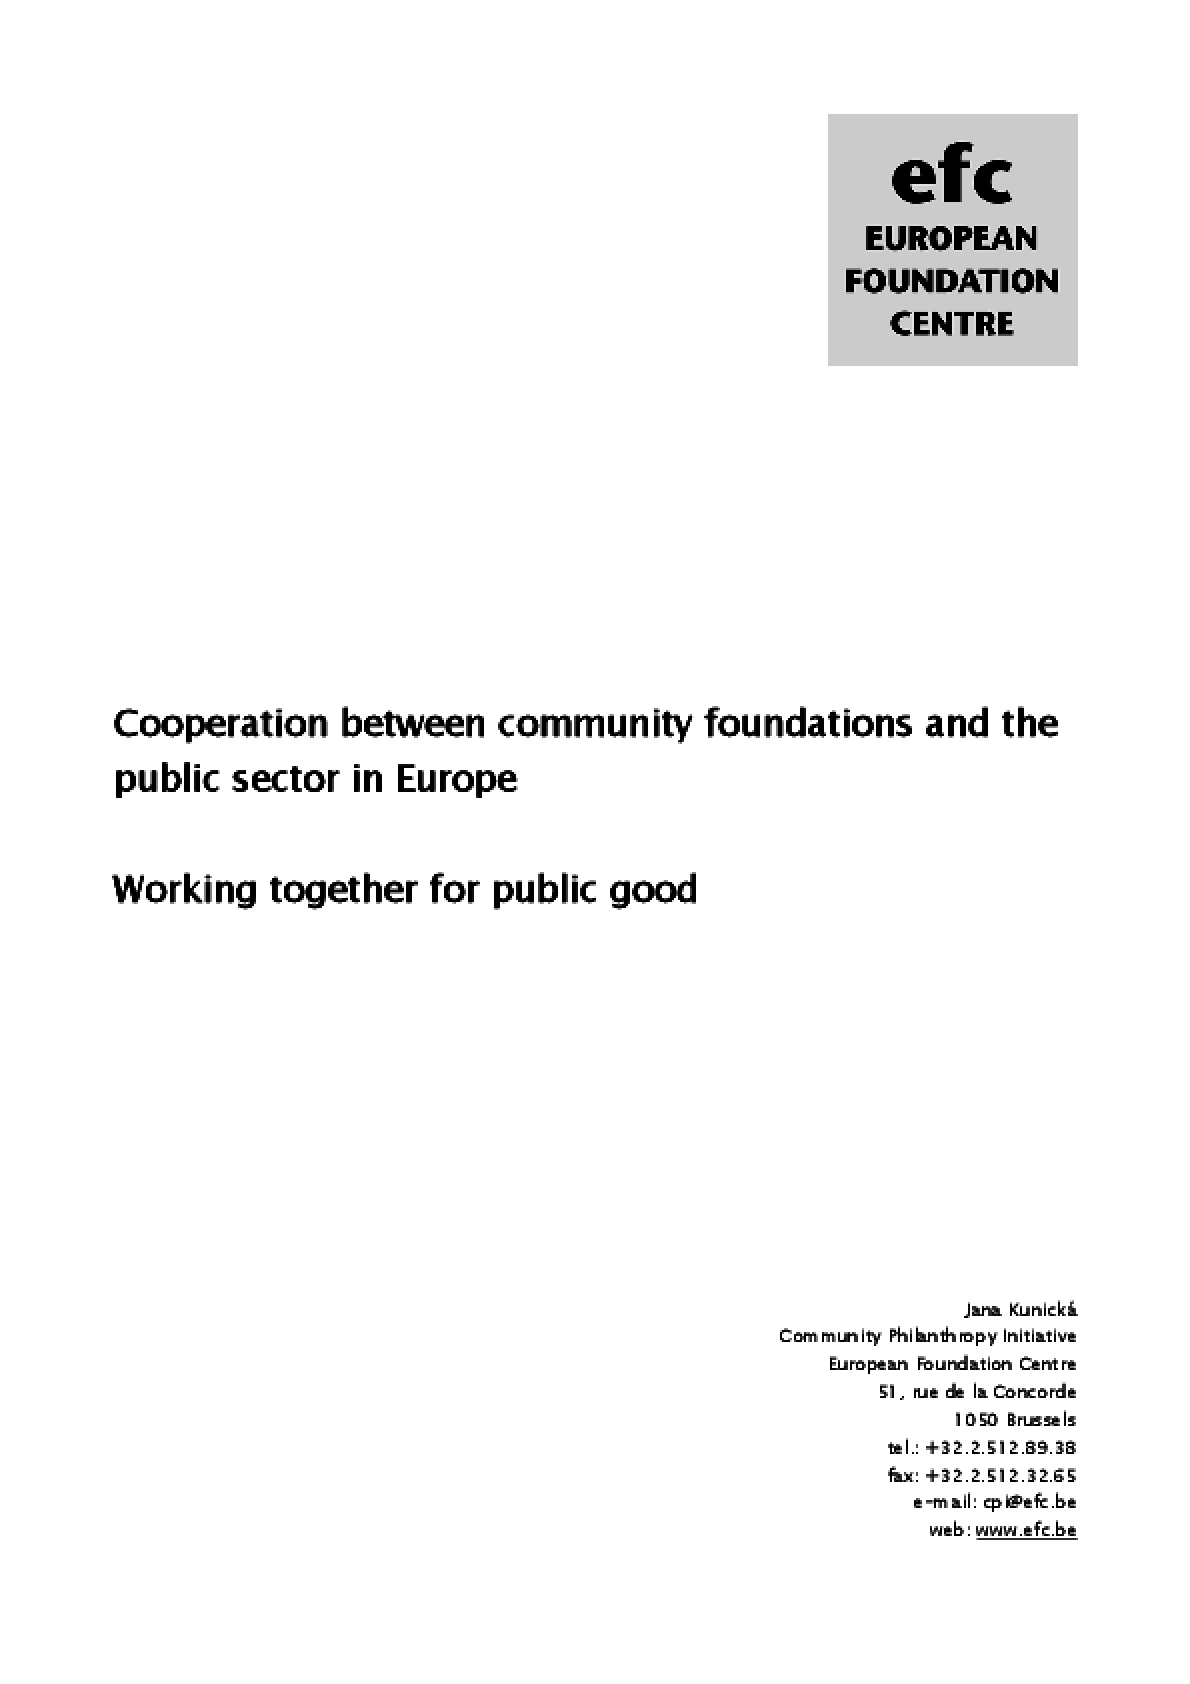 Cooperation Between Community Foundations and the Public Sector in Europe: Working Together For the Public Good